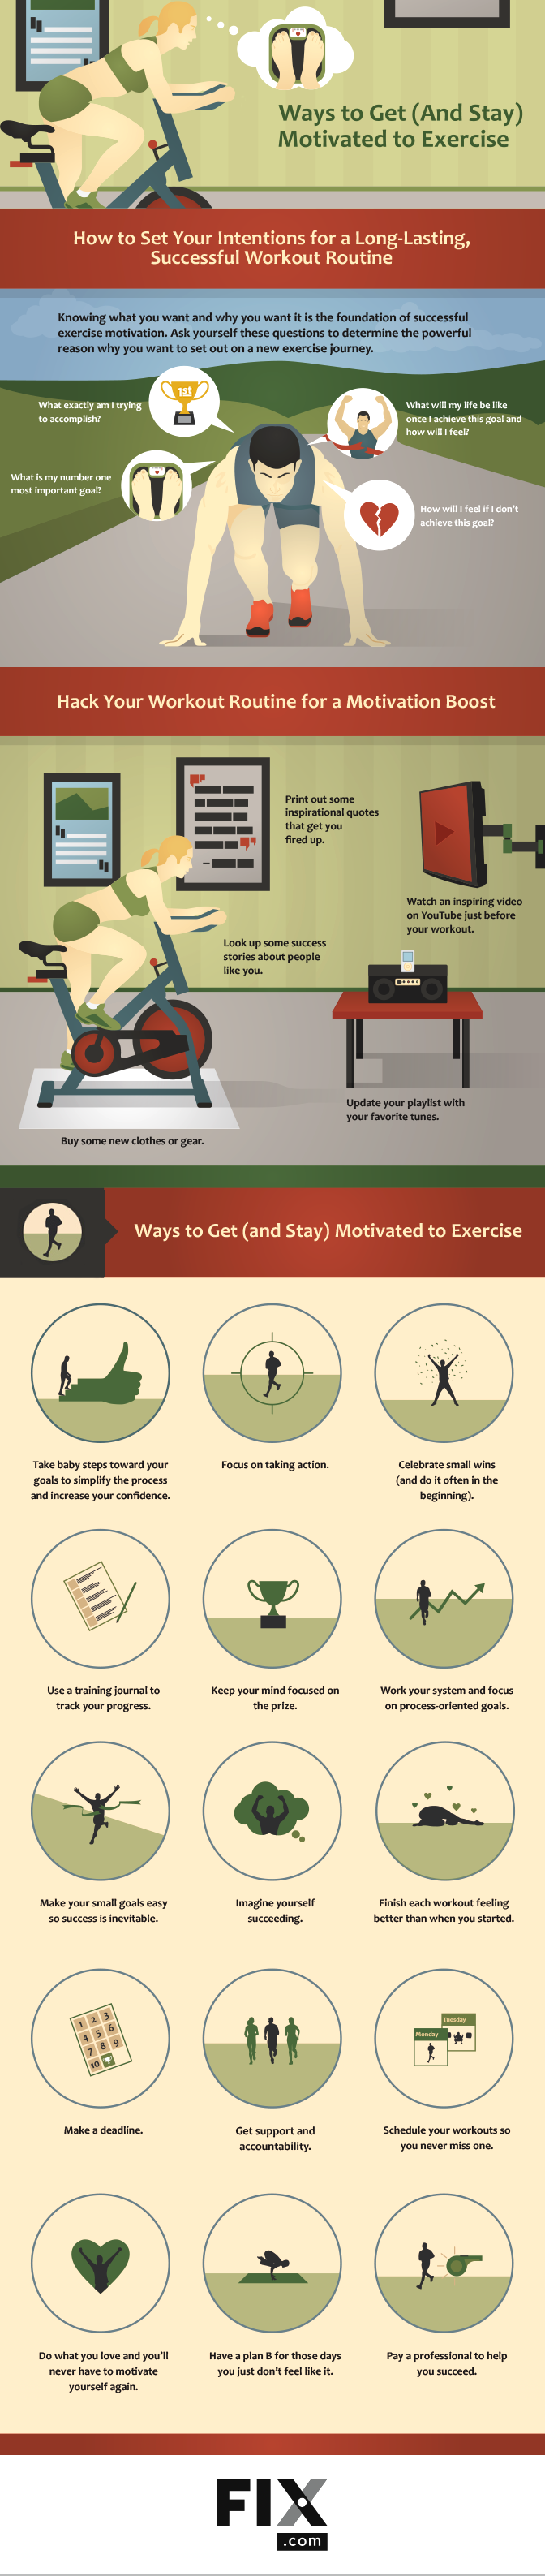 Ways to Get (and Stay) Motivated to Exercise #infographic